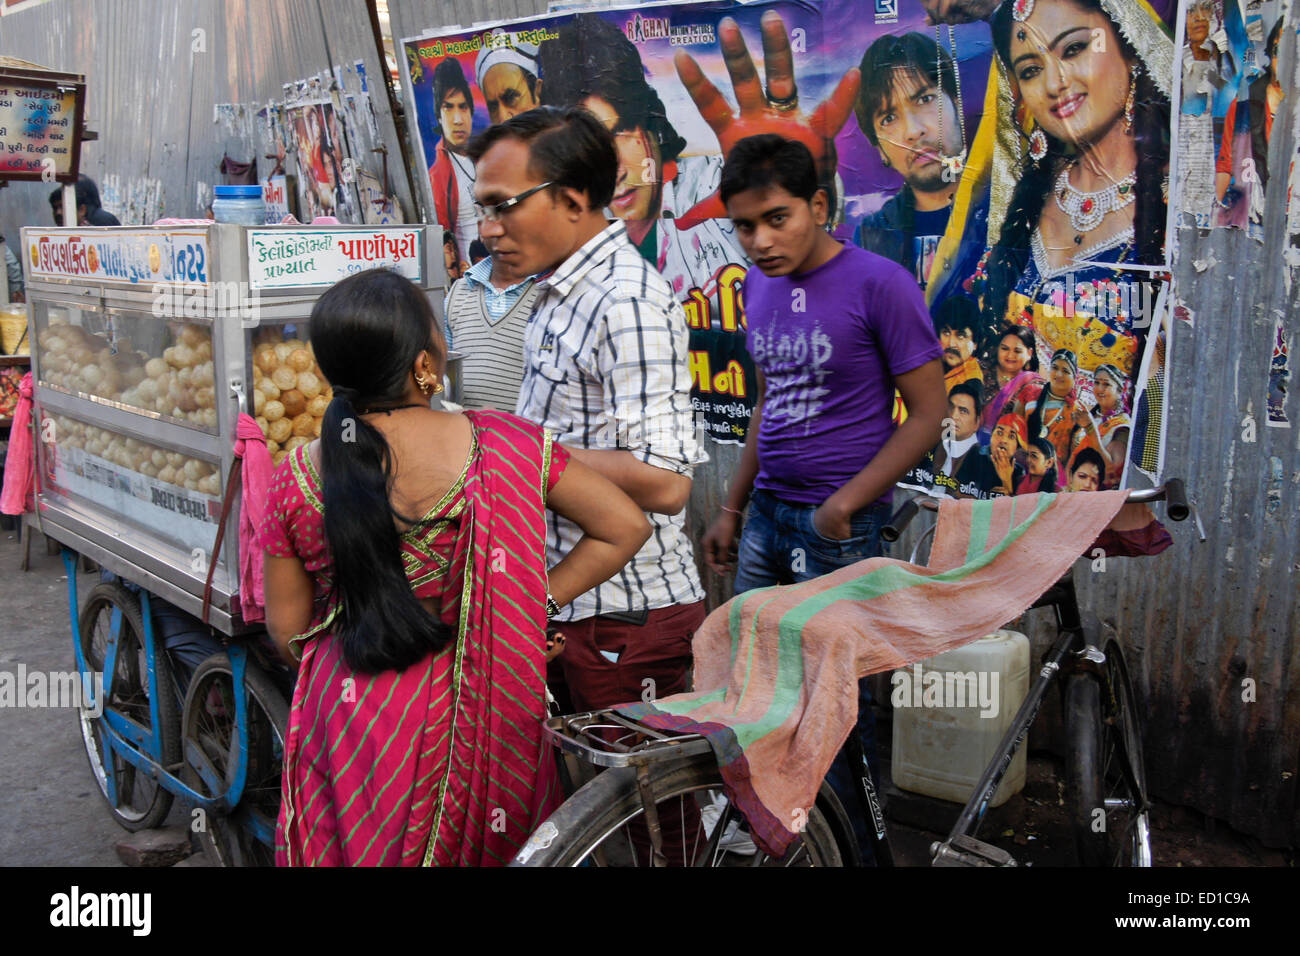 Street vendor and movie posters in Old Ahmedabad, Gujarat, India - Stock Image